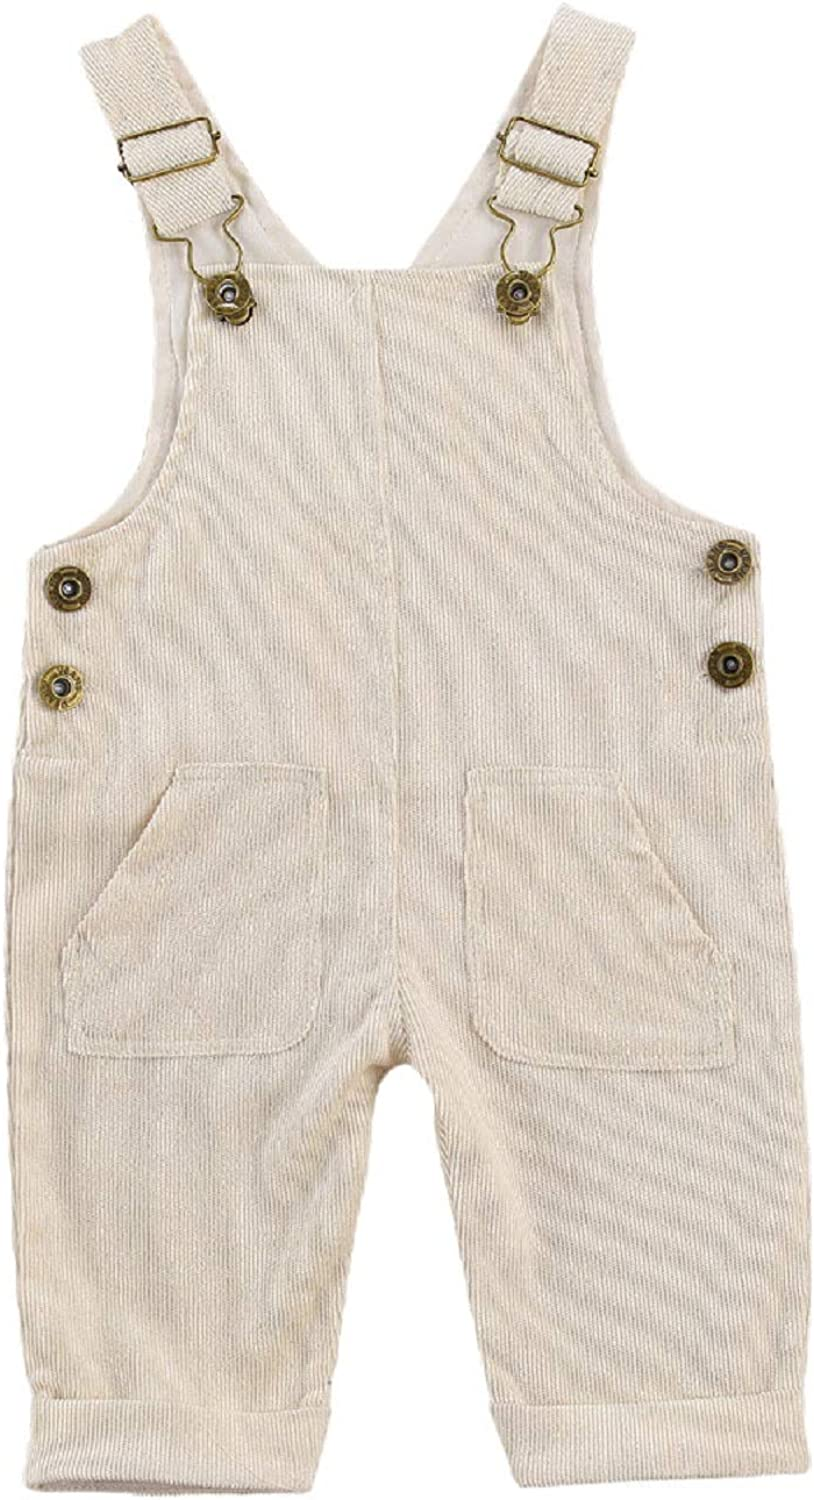 MXVPY Toddler Baby Boy Bib Pants Corduroy Solid Color Adjustable Buckle Bottom Pants One-Piece Jumpsuit with Pockets